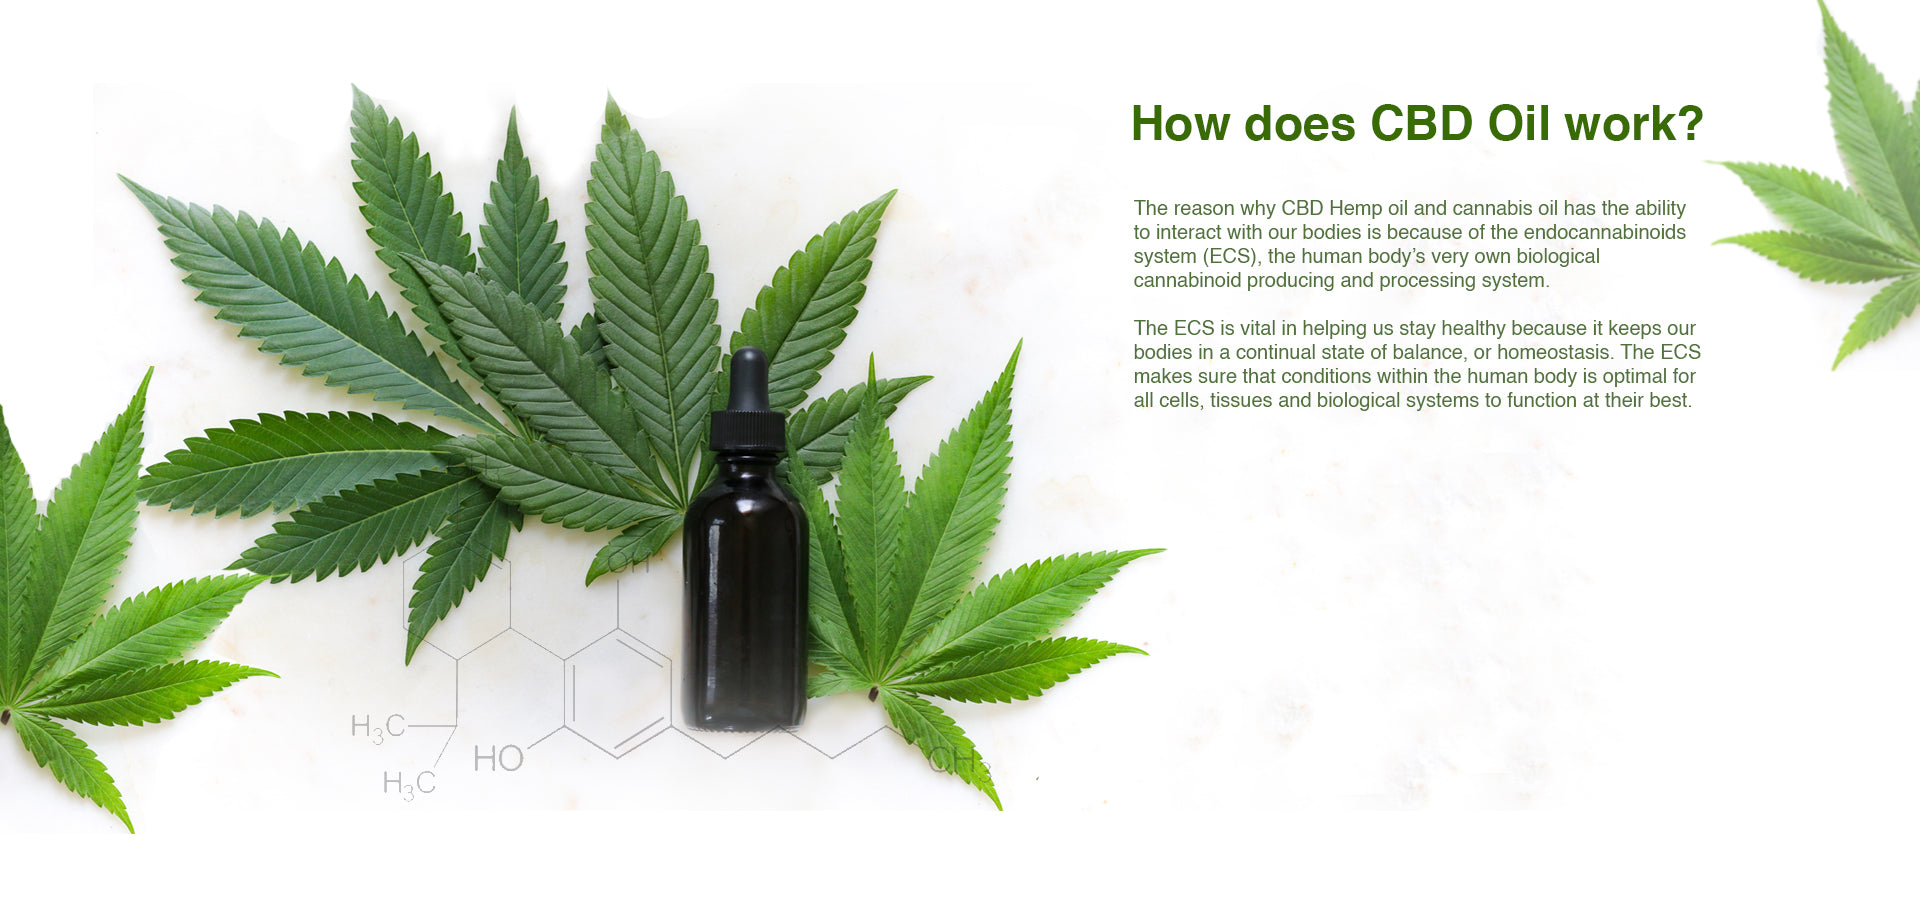 To know more about CBD Oil